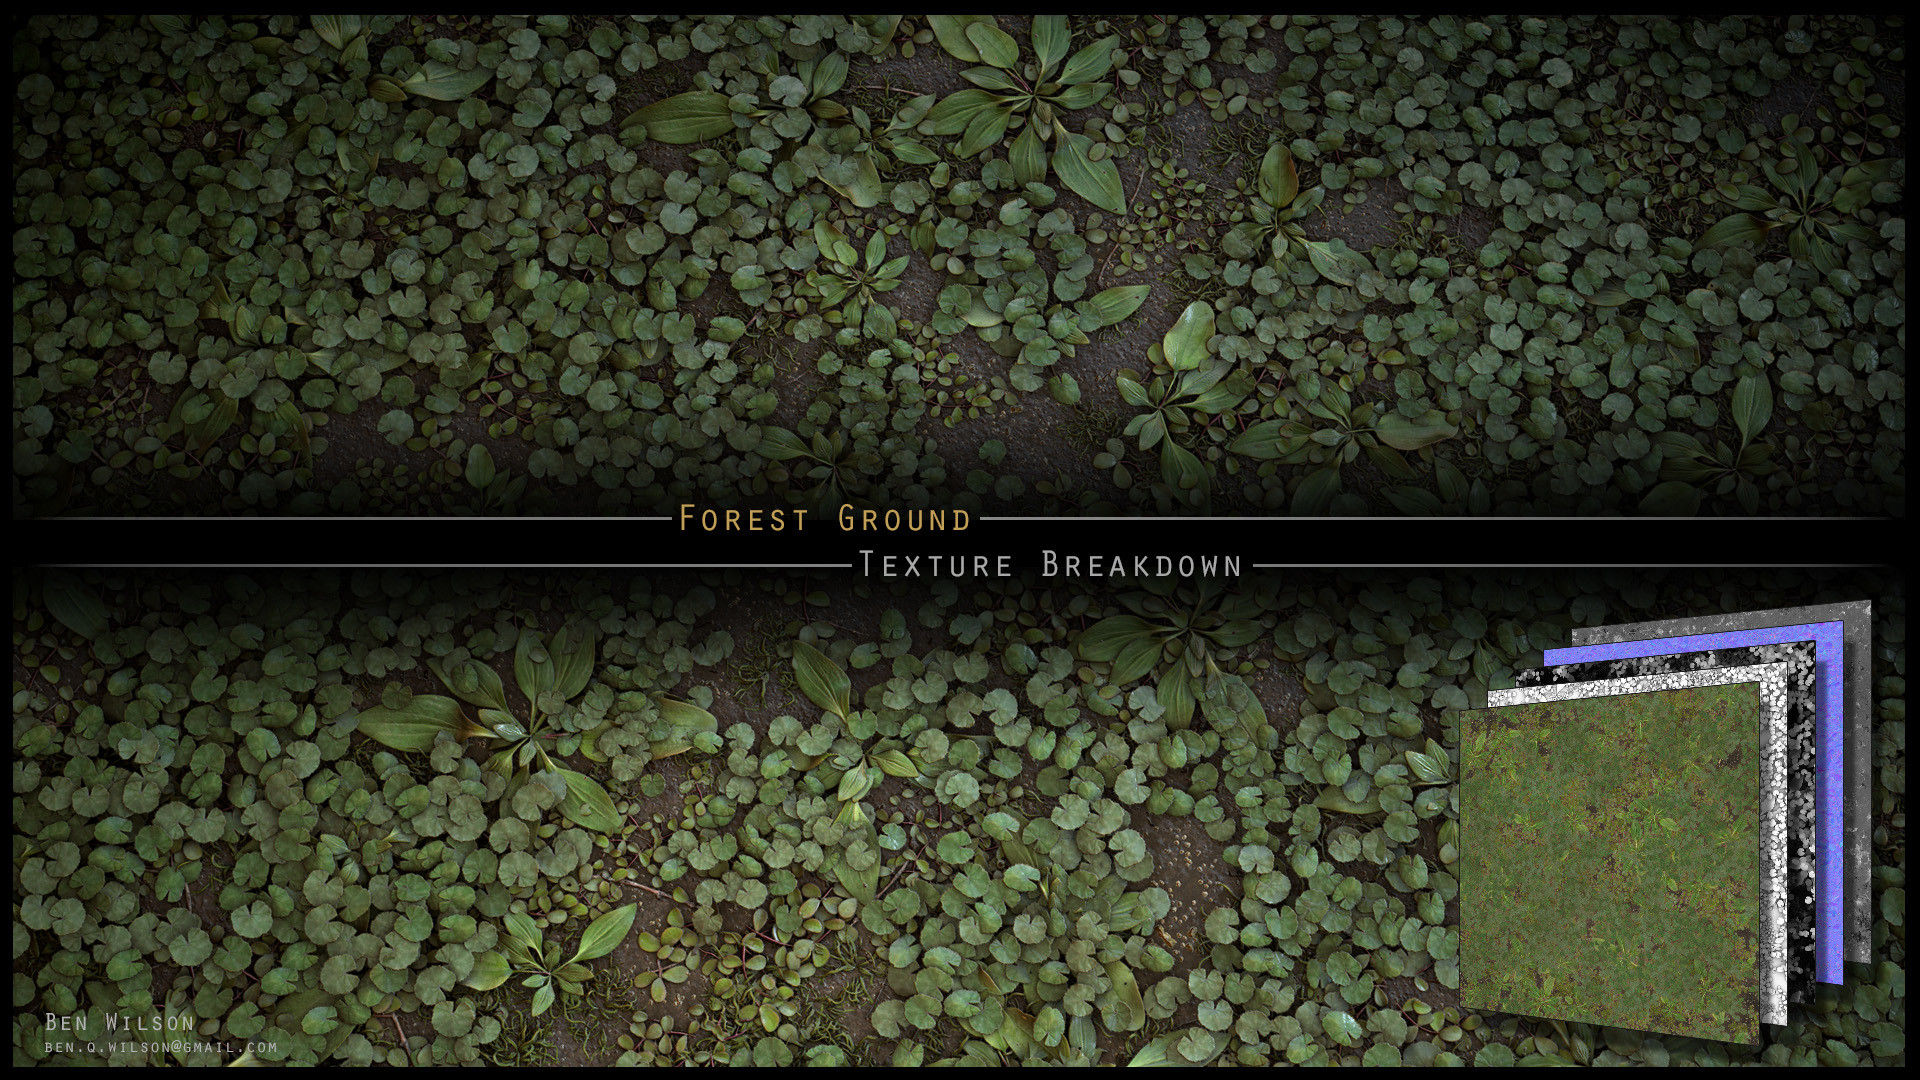 Ben wilson forestground texturebreakdown 00